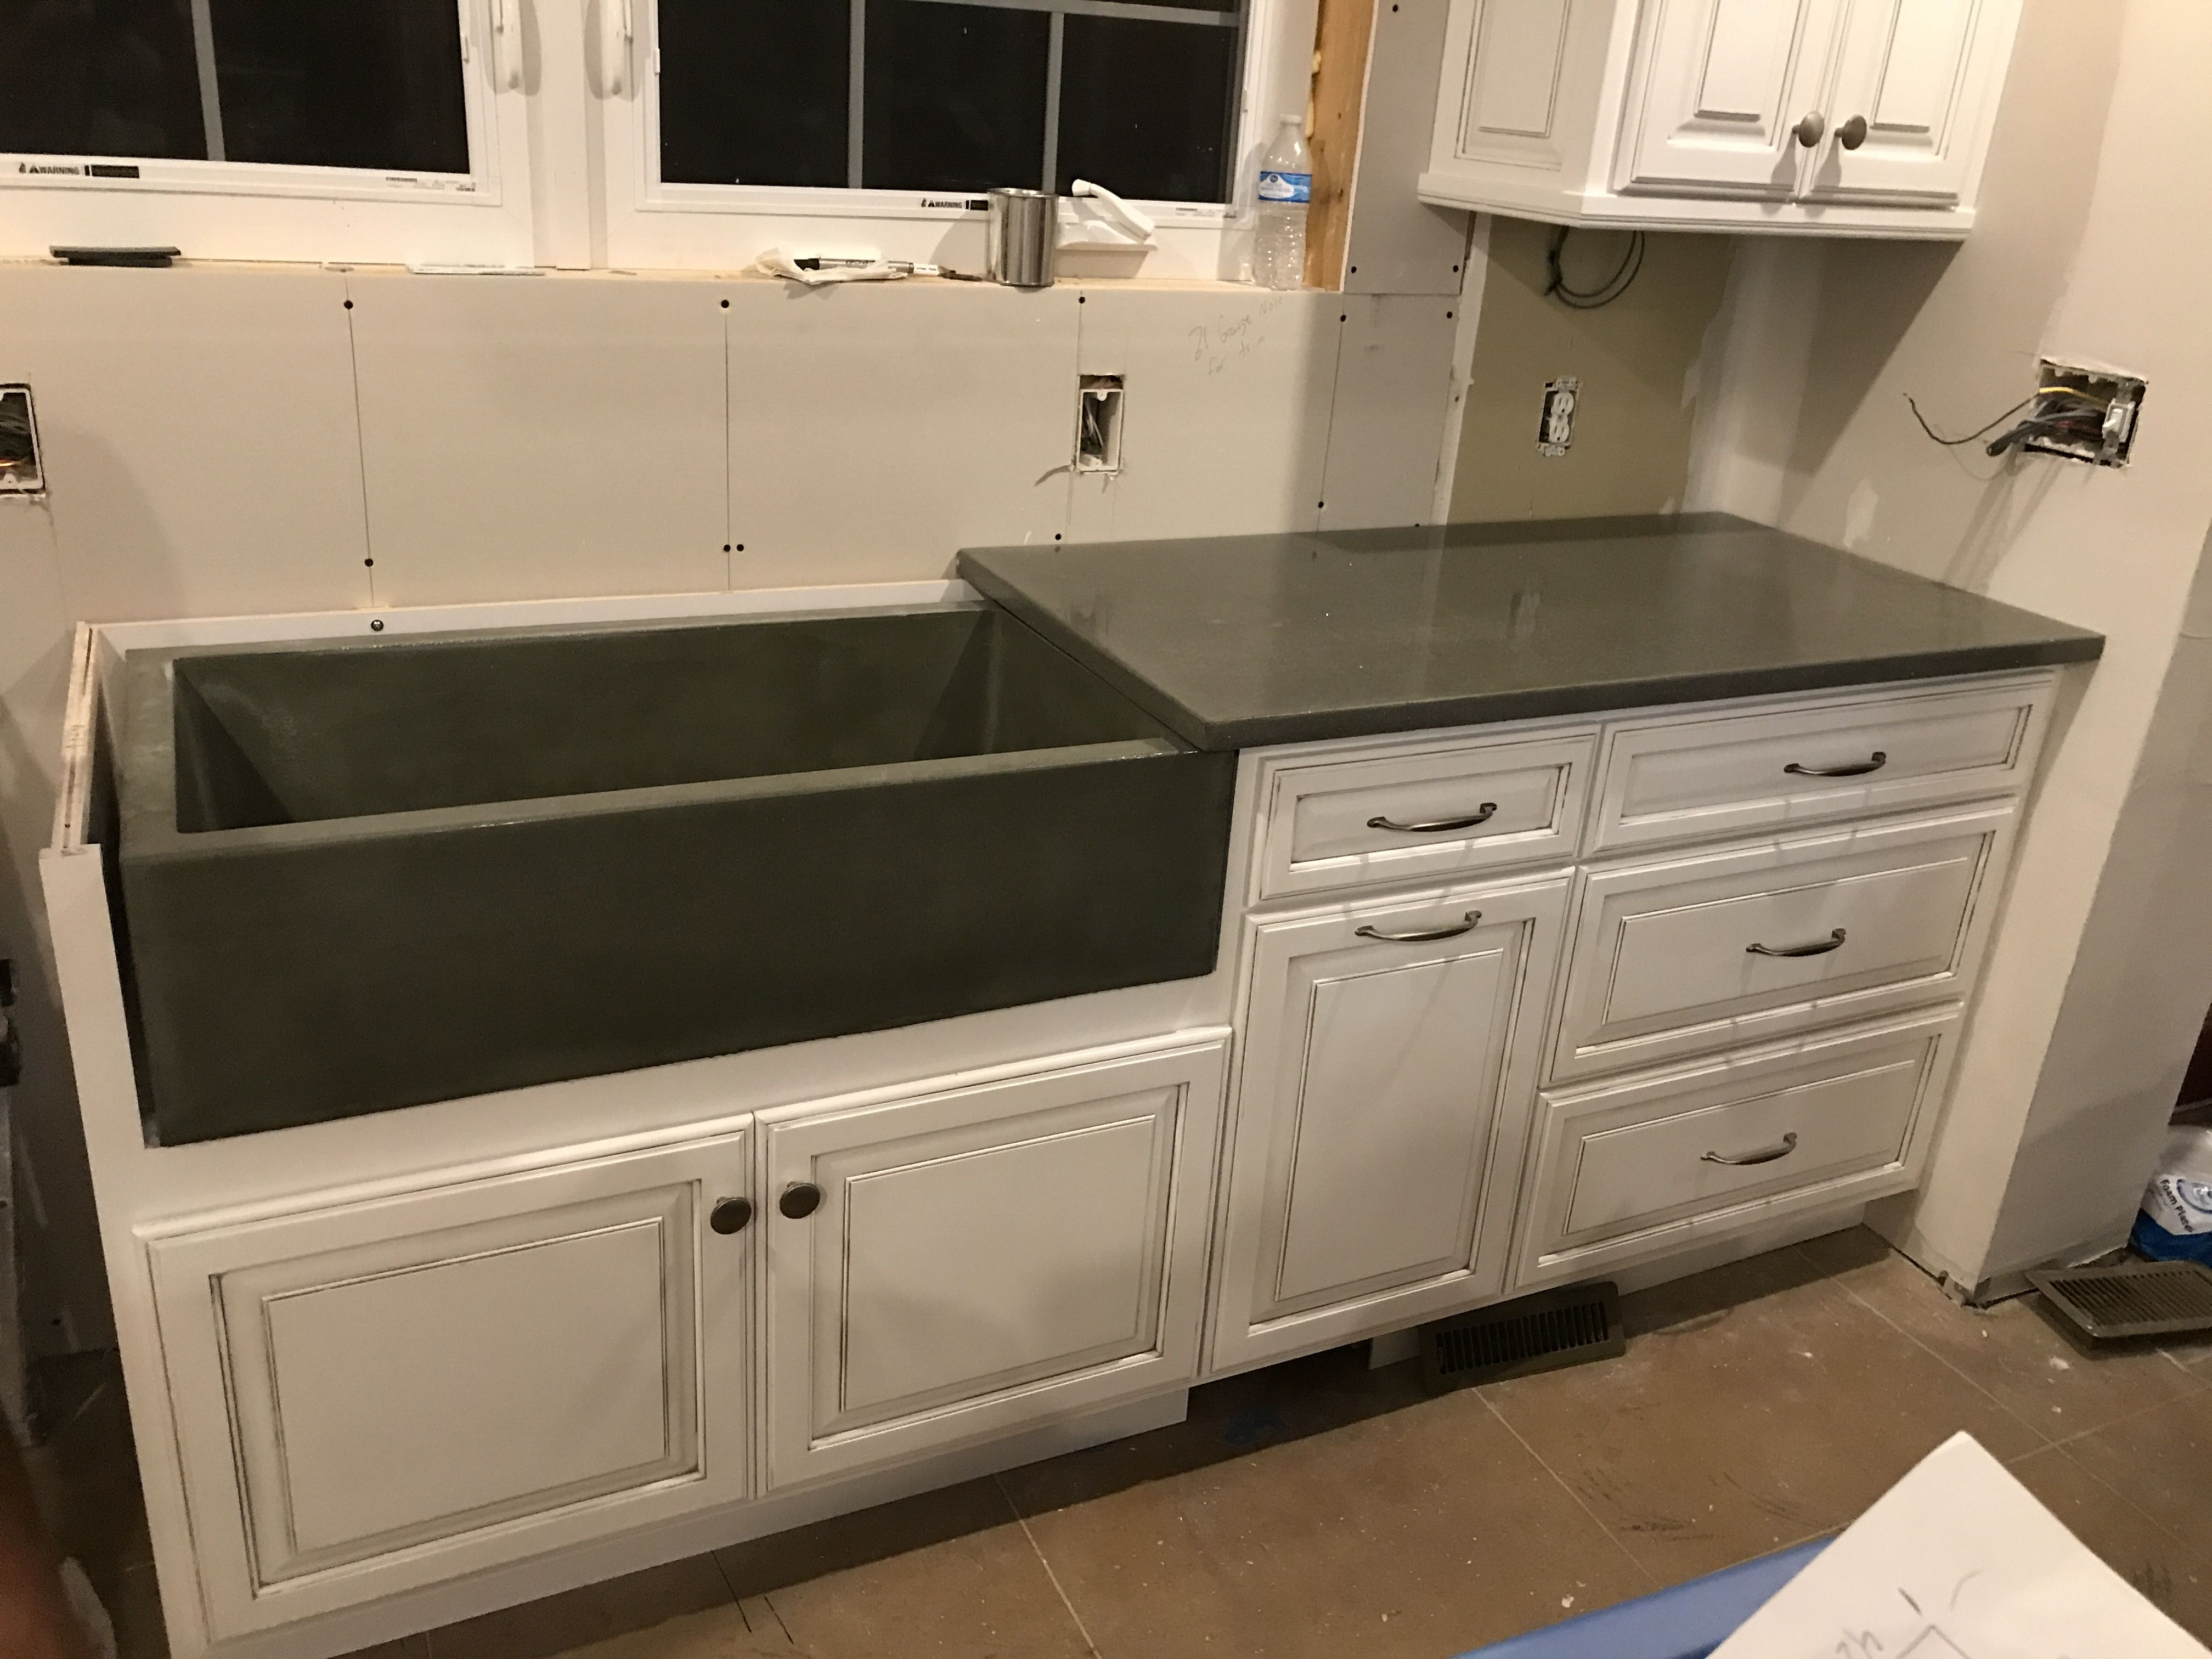 Pin By Benchmark Construction On G F R C Glass Fiber Reinforced Concrete Kitchen Cabinets Countertops Home Decor